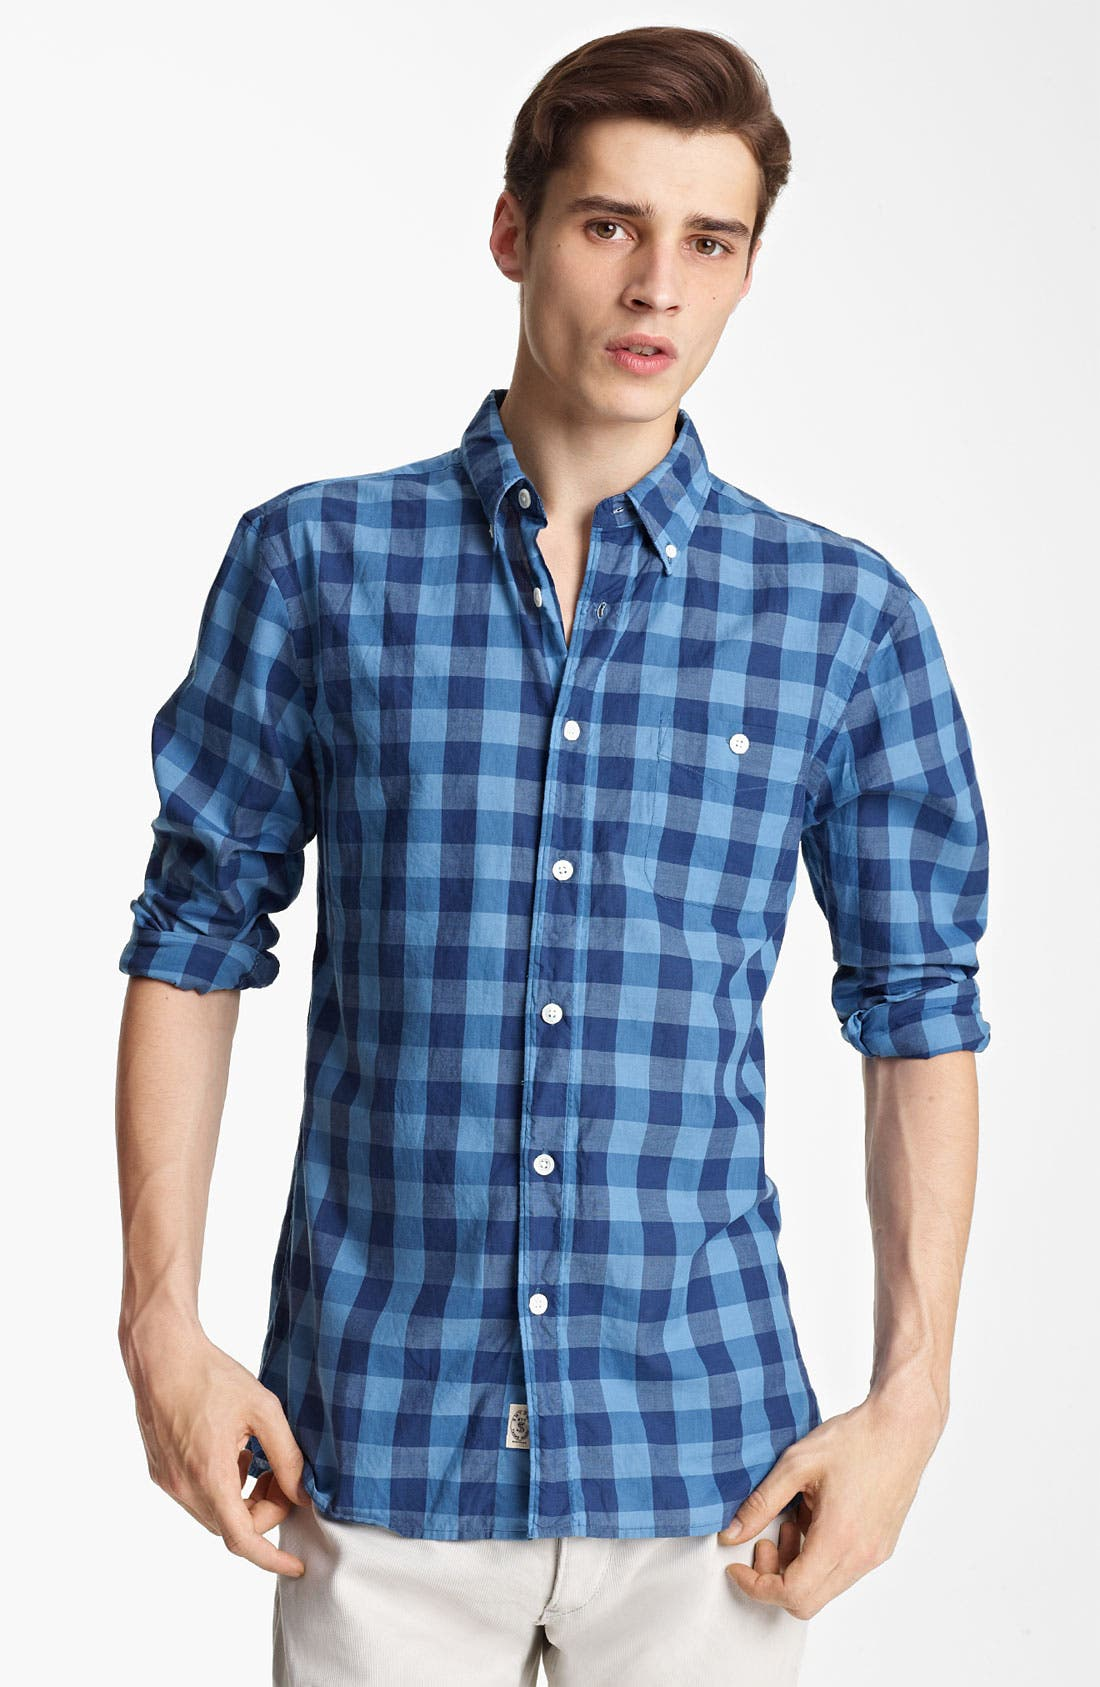 Alternate Image 1 Selected - Todd Snyder Check Woven Shirt